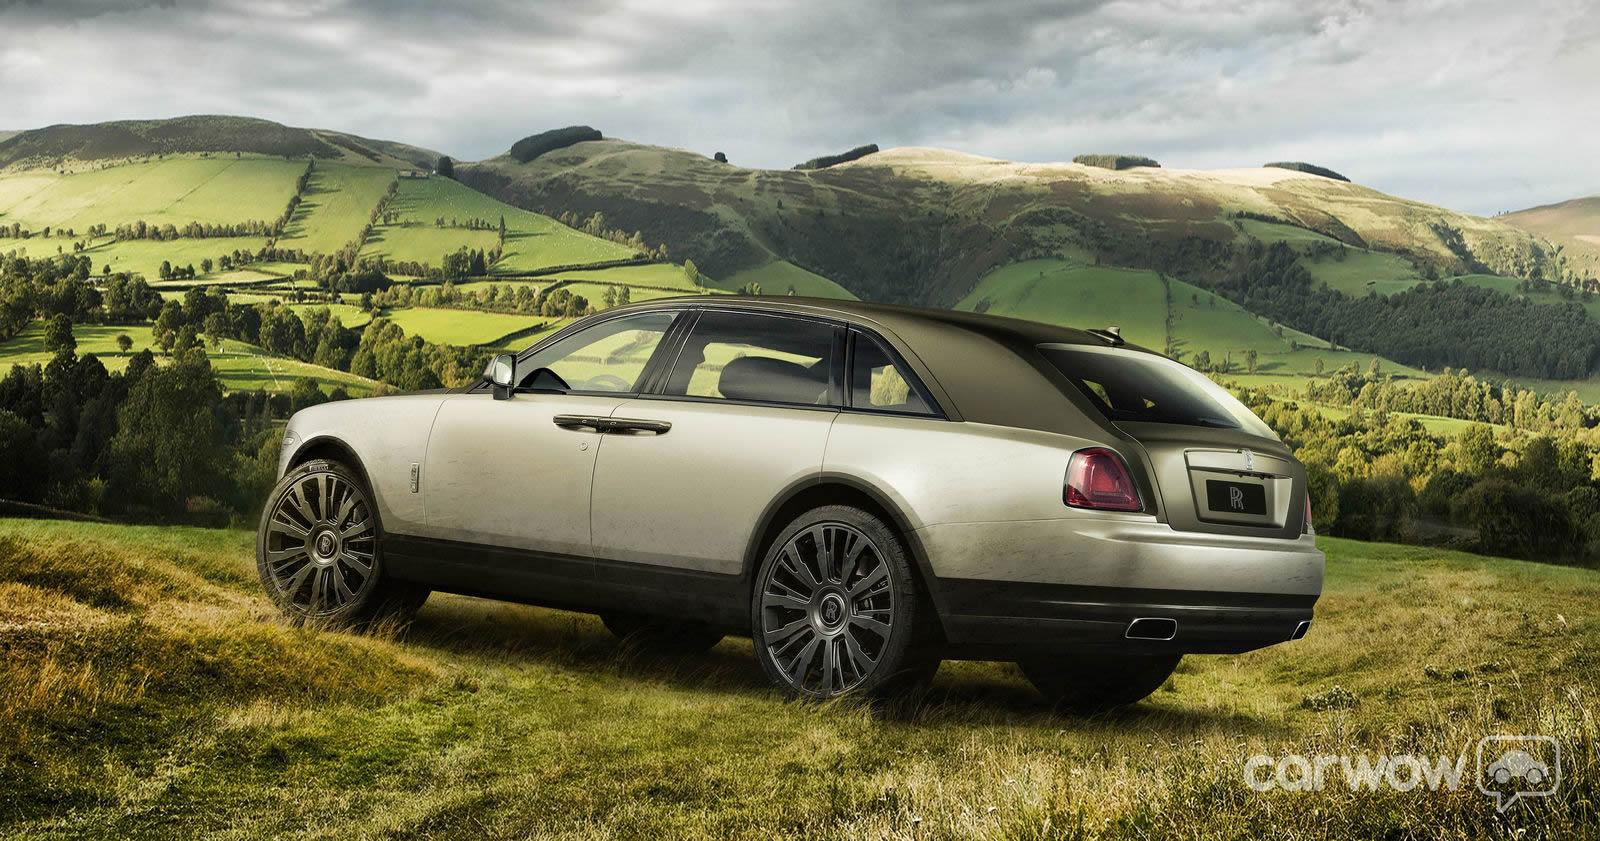 2015 rolls royce suv crossover rendering by carwow uk egmcartech. Black Bedroom Furniture Sets. Home Design Ideas